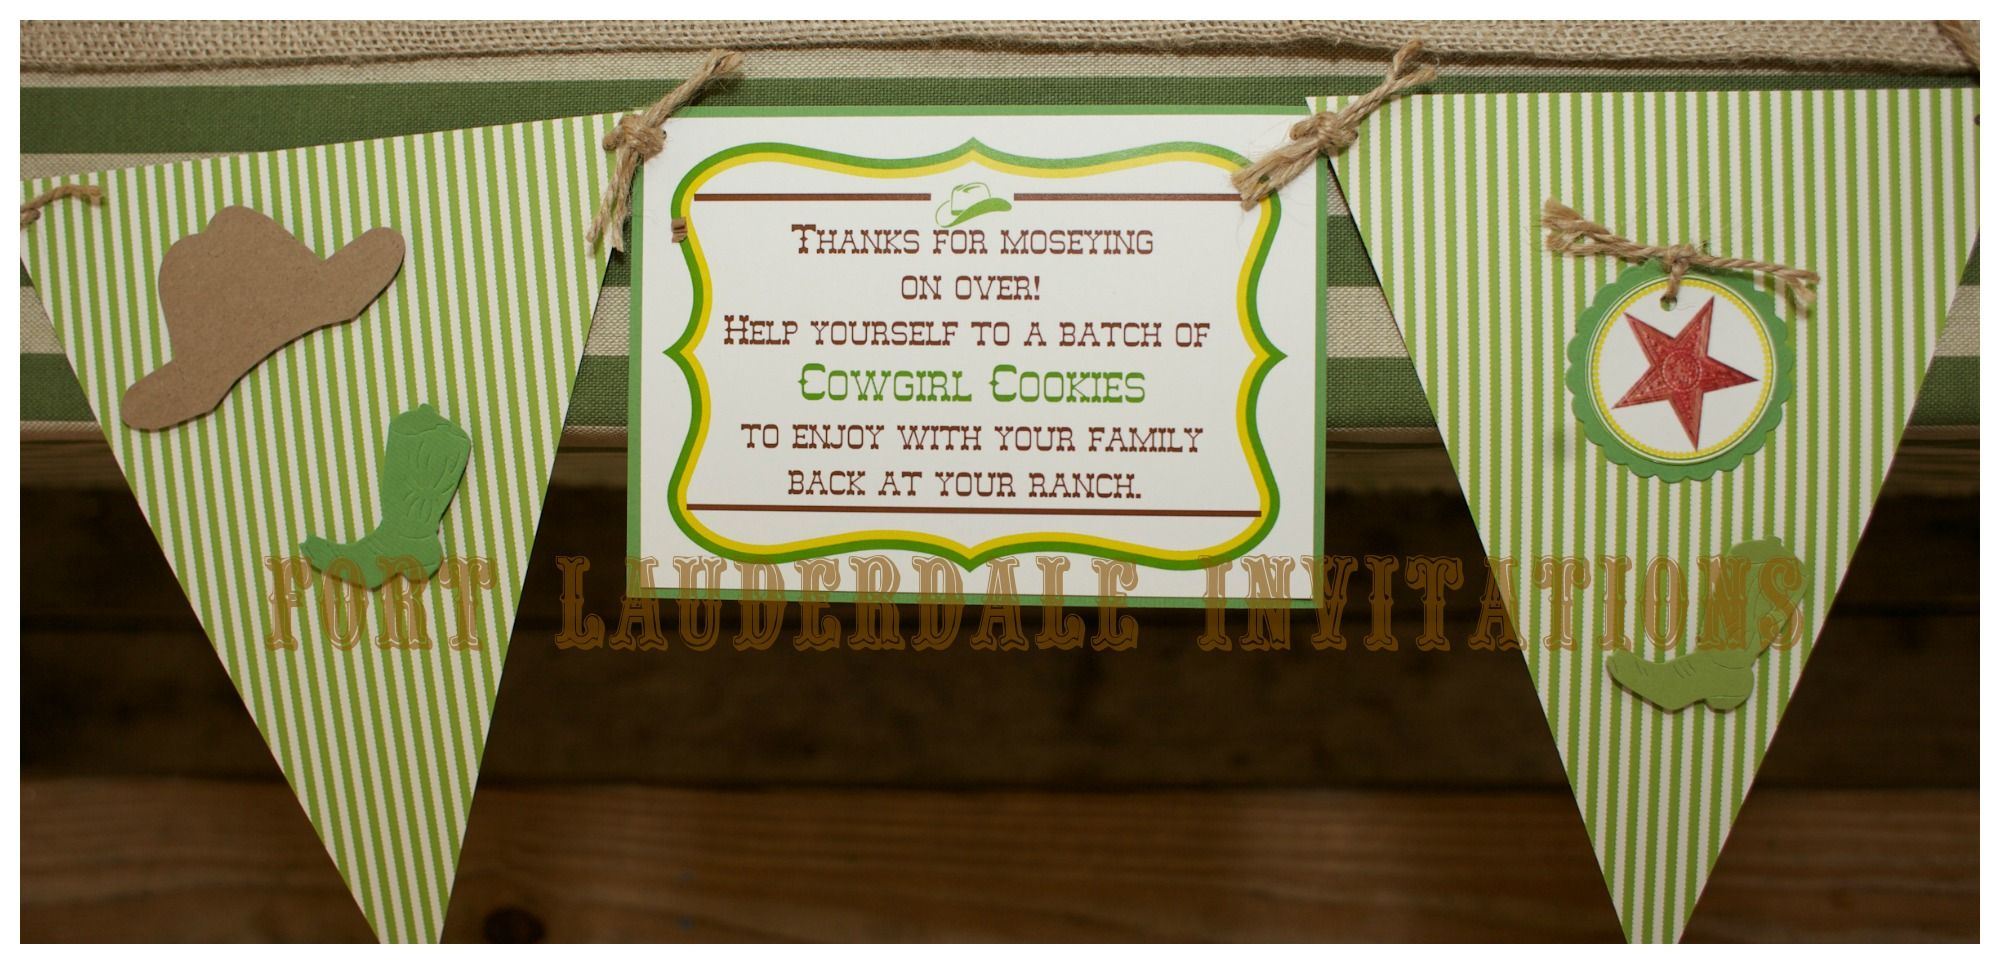 Cowgirl Party - Banner by Fort Lauderdale Invitations - Visit our website for ordering information! Fort Lauderdale * Hollywood * Miami * Palm Beaches * We Ship Worldwide